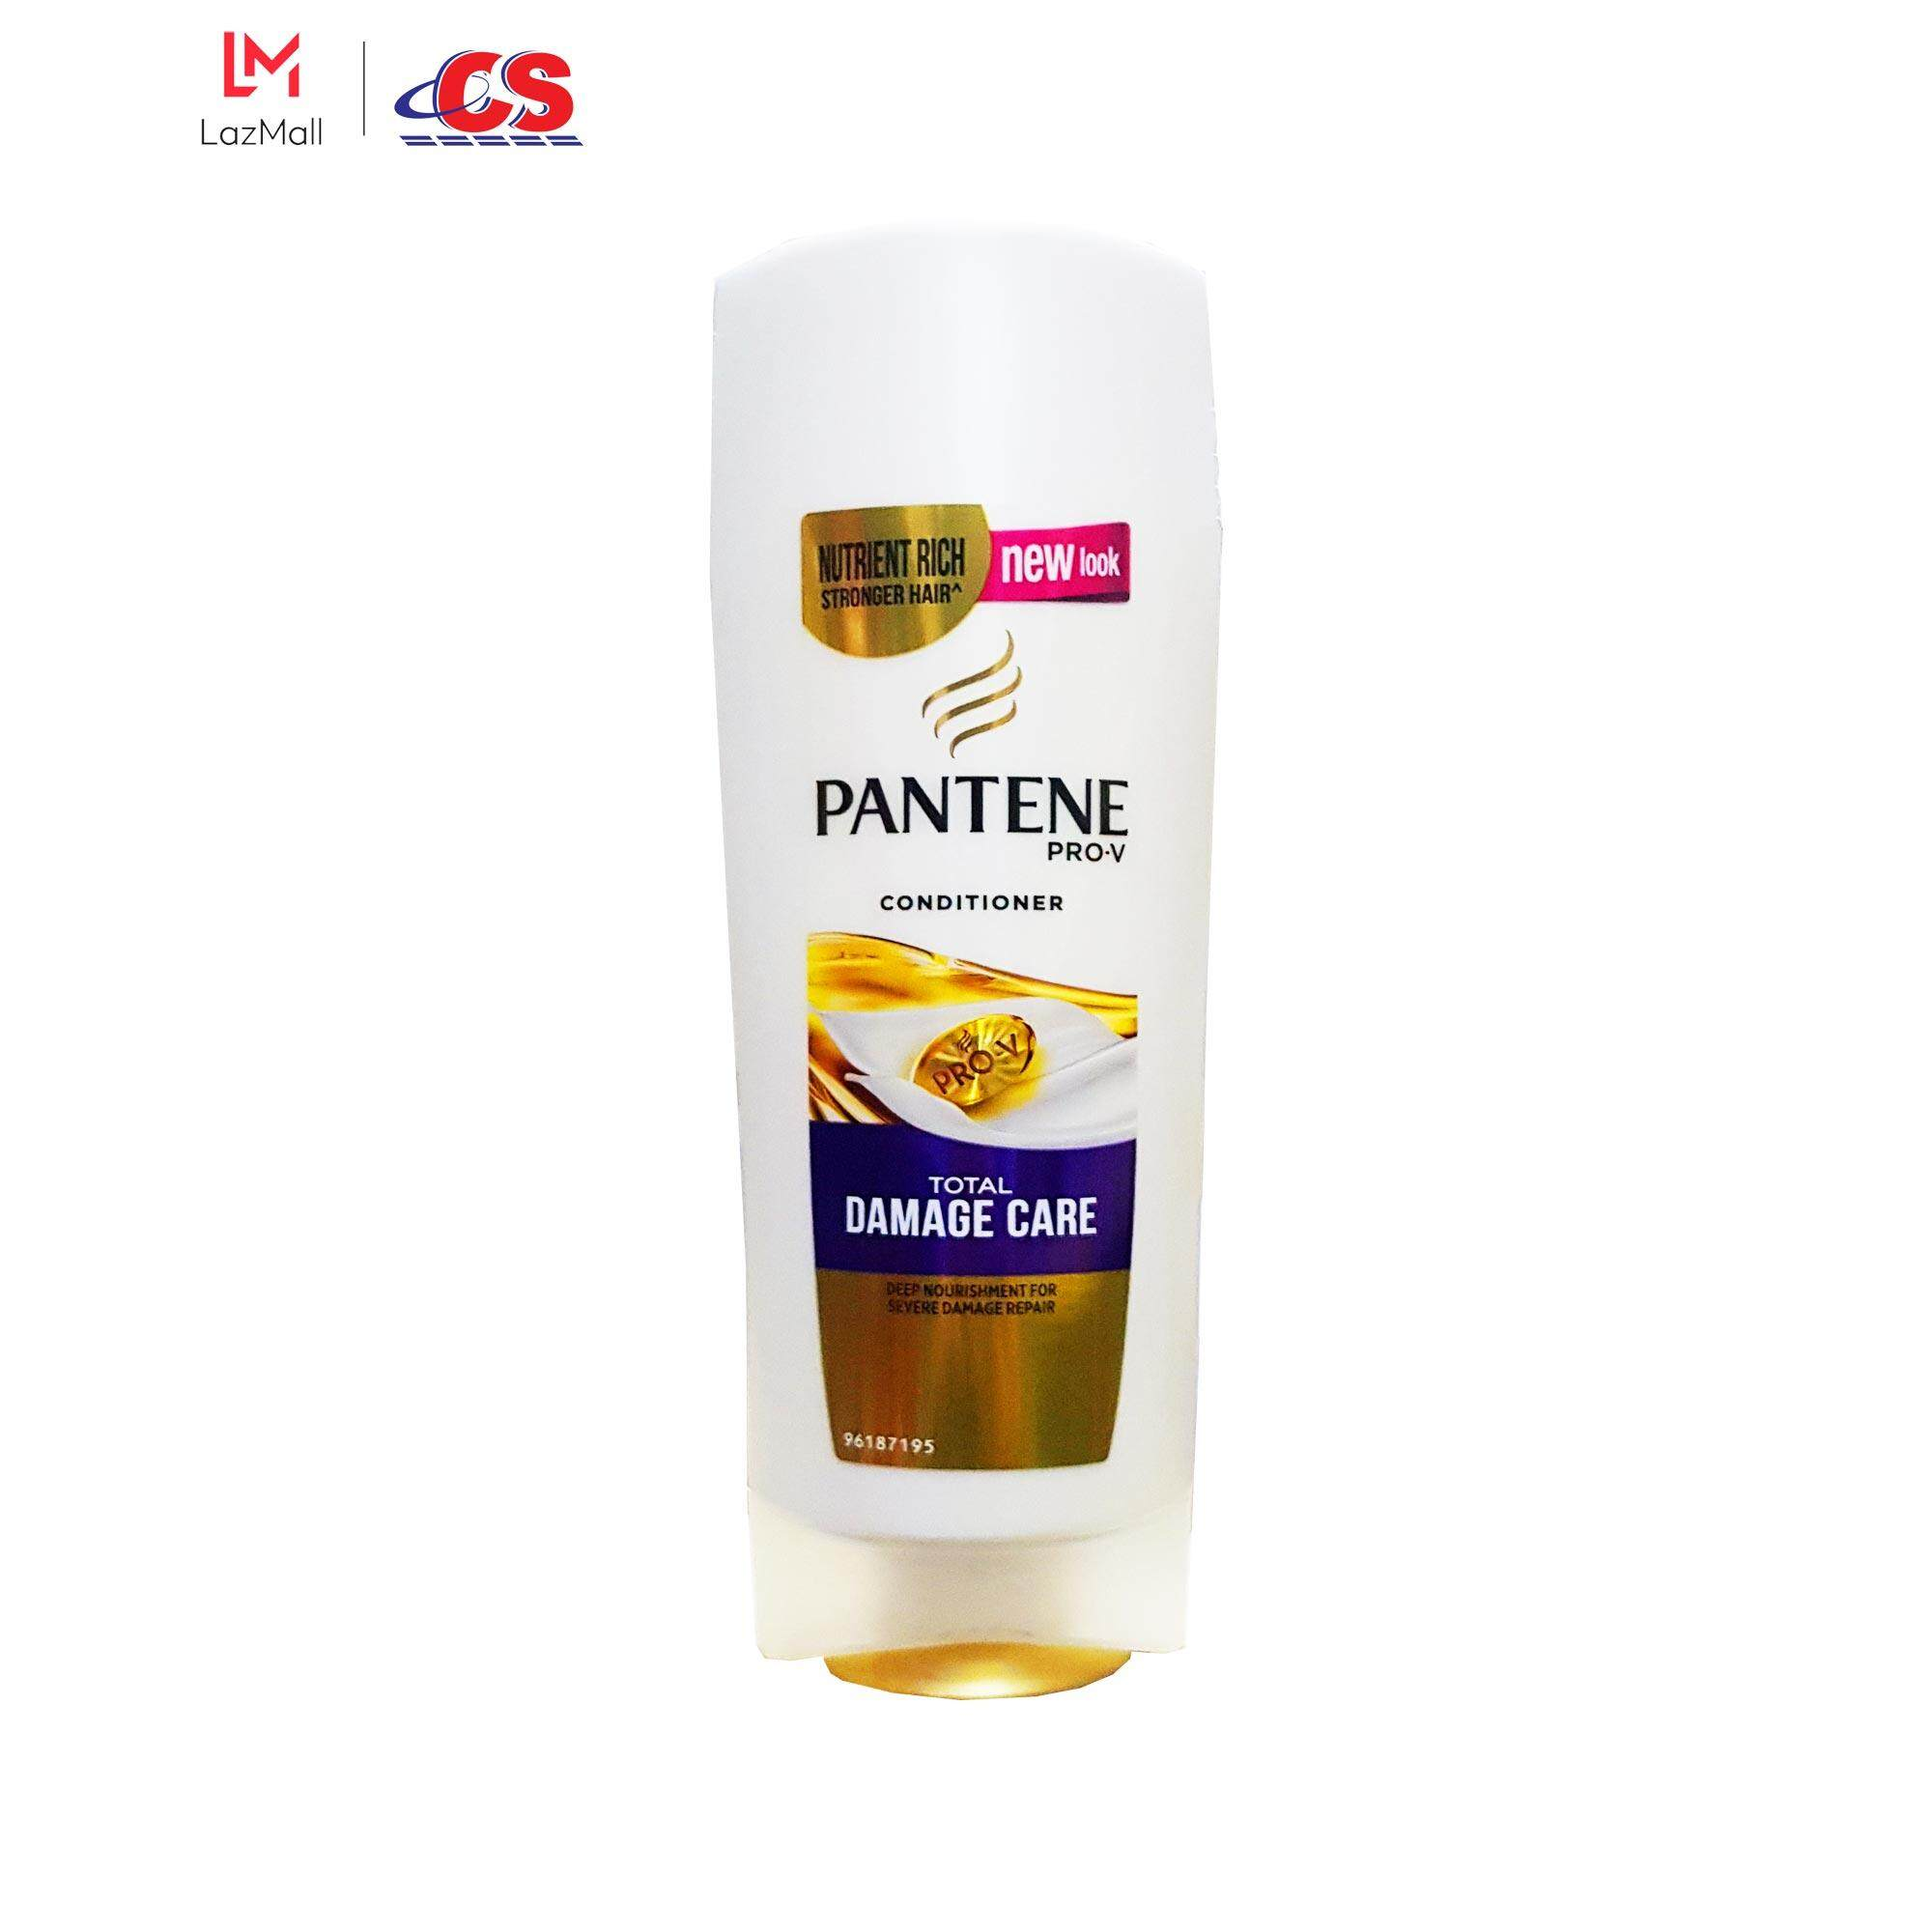 PANTENE Conditioner Total Damage Care 335ml